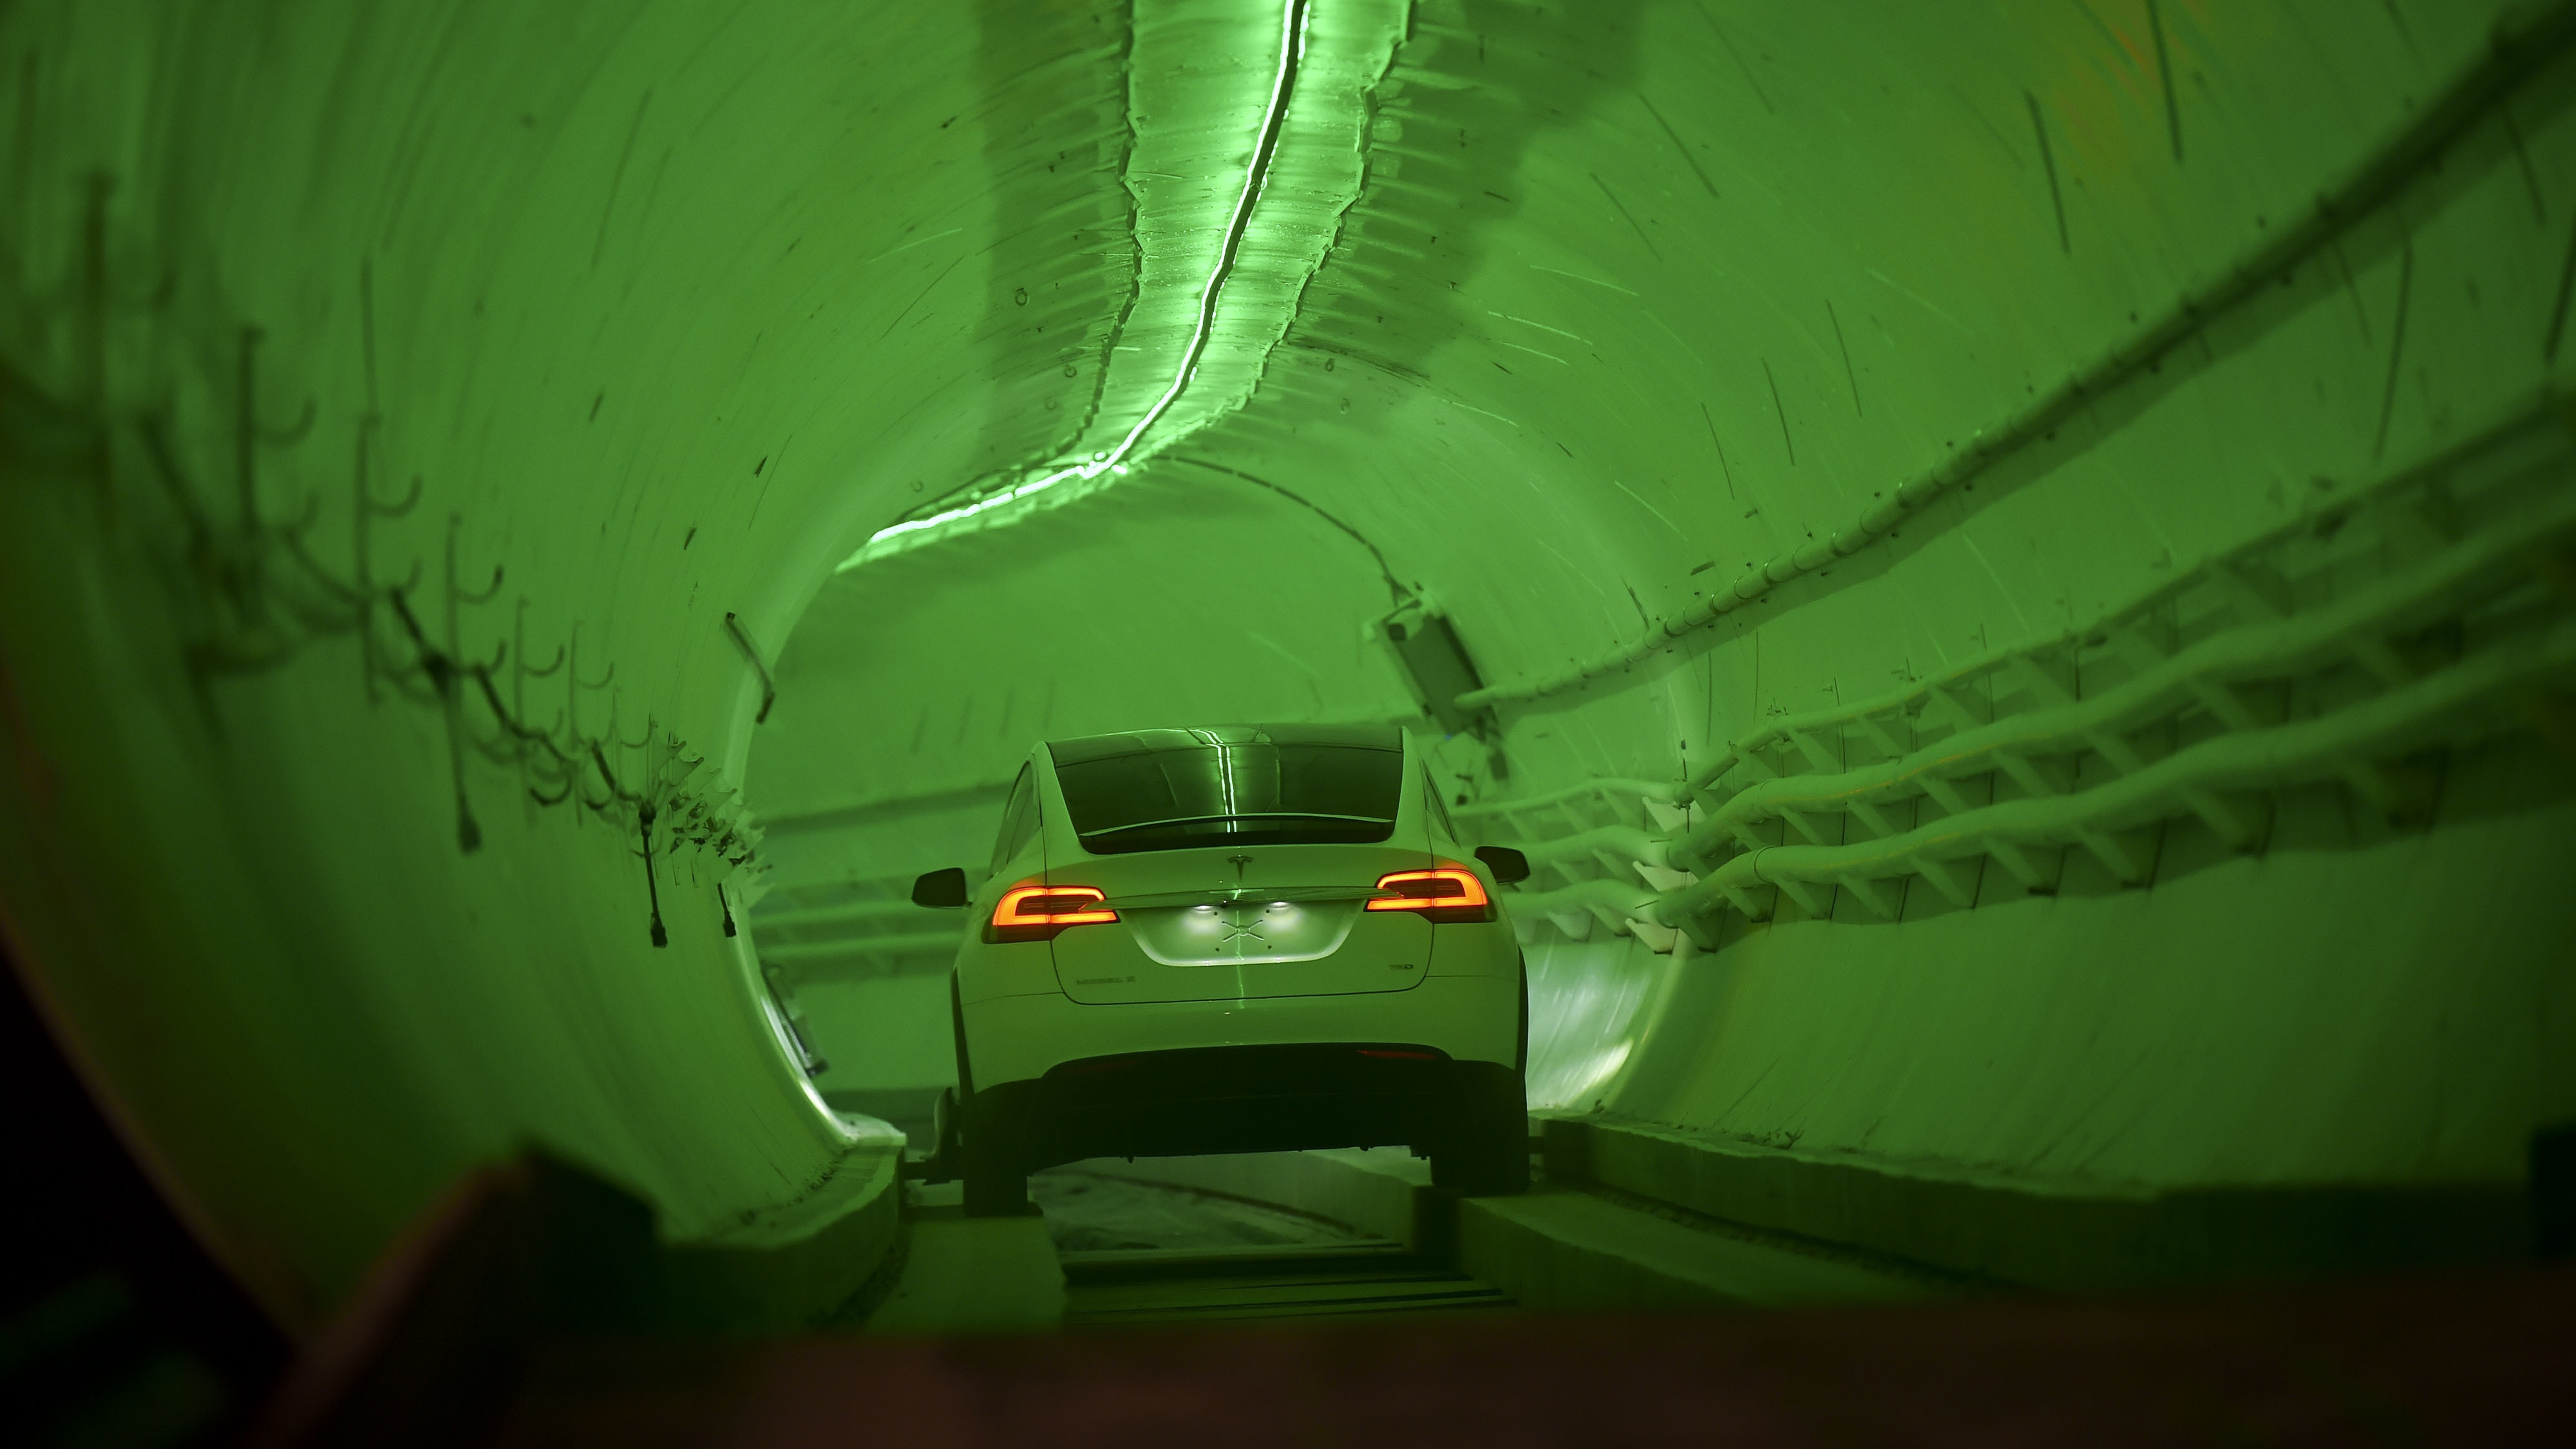 Musk: Tunnels Can Get Adventist College Students Back to Dorms Before Curfew